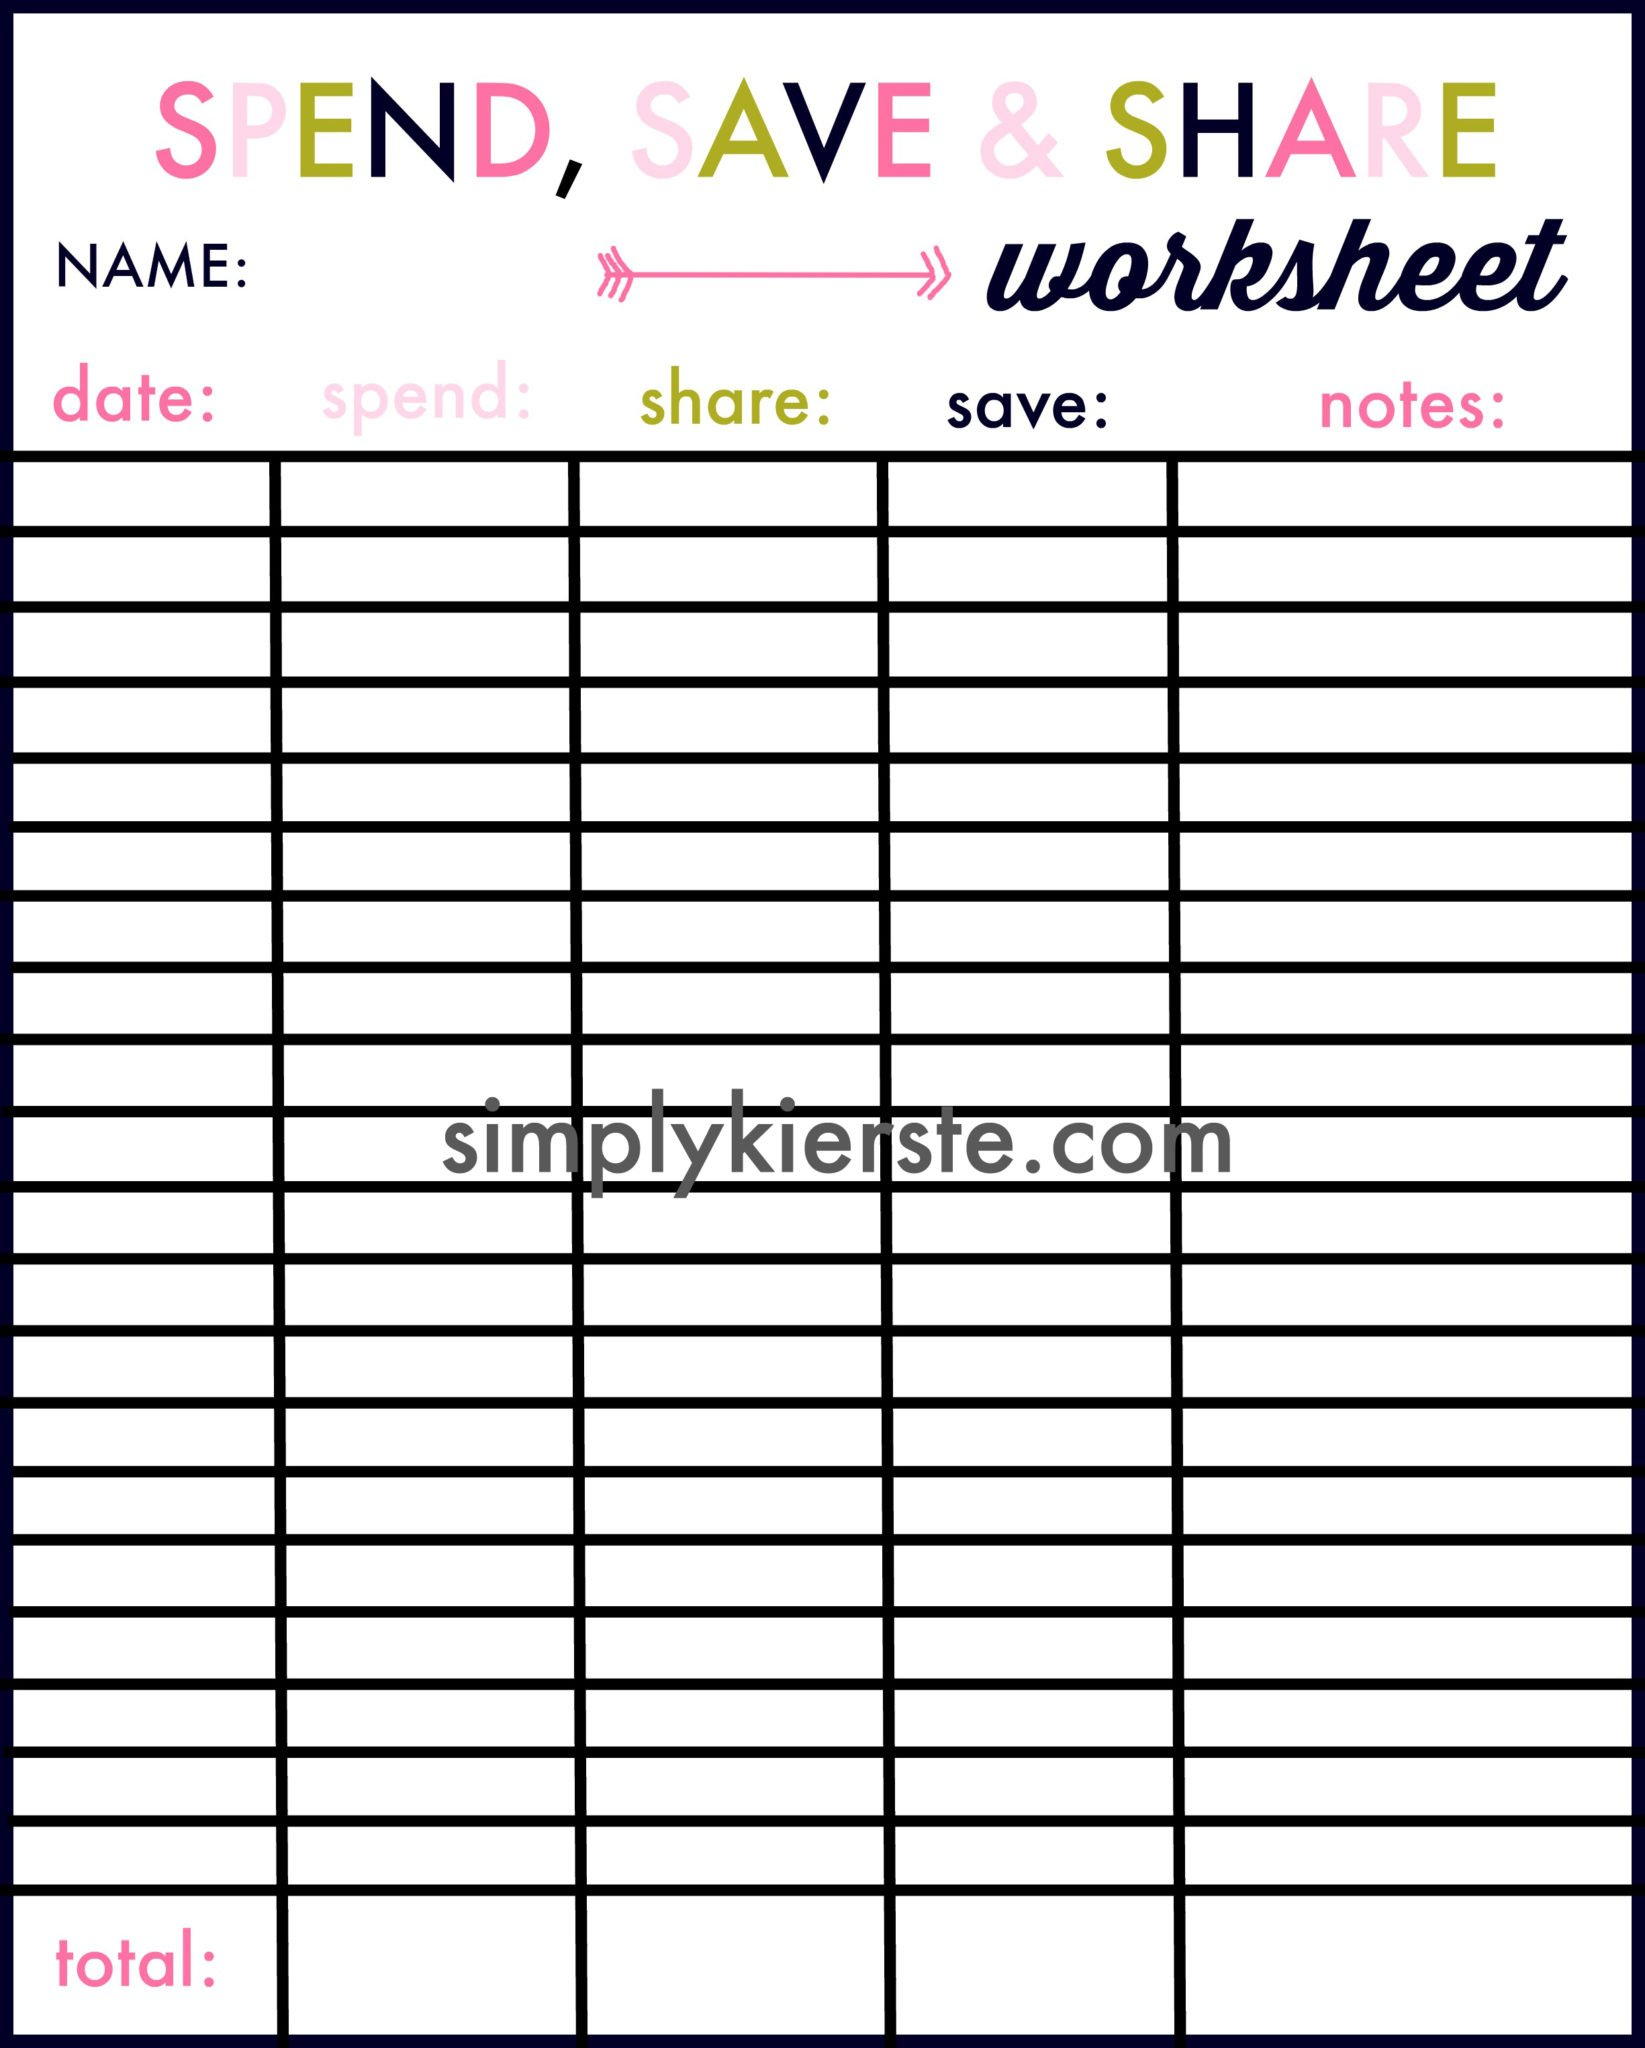 save spend share savings worksheet | oldsaltfarm.com